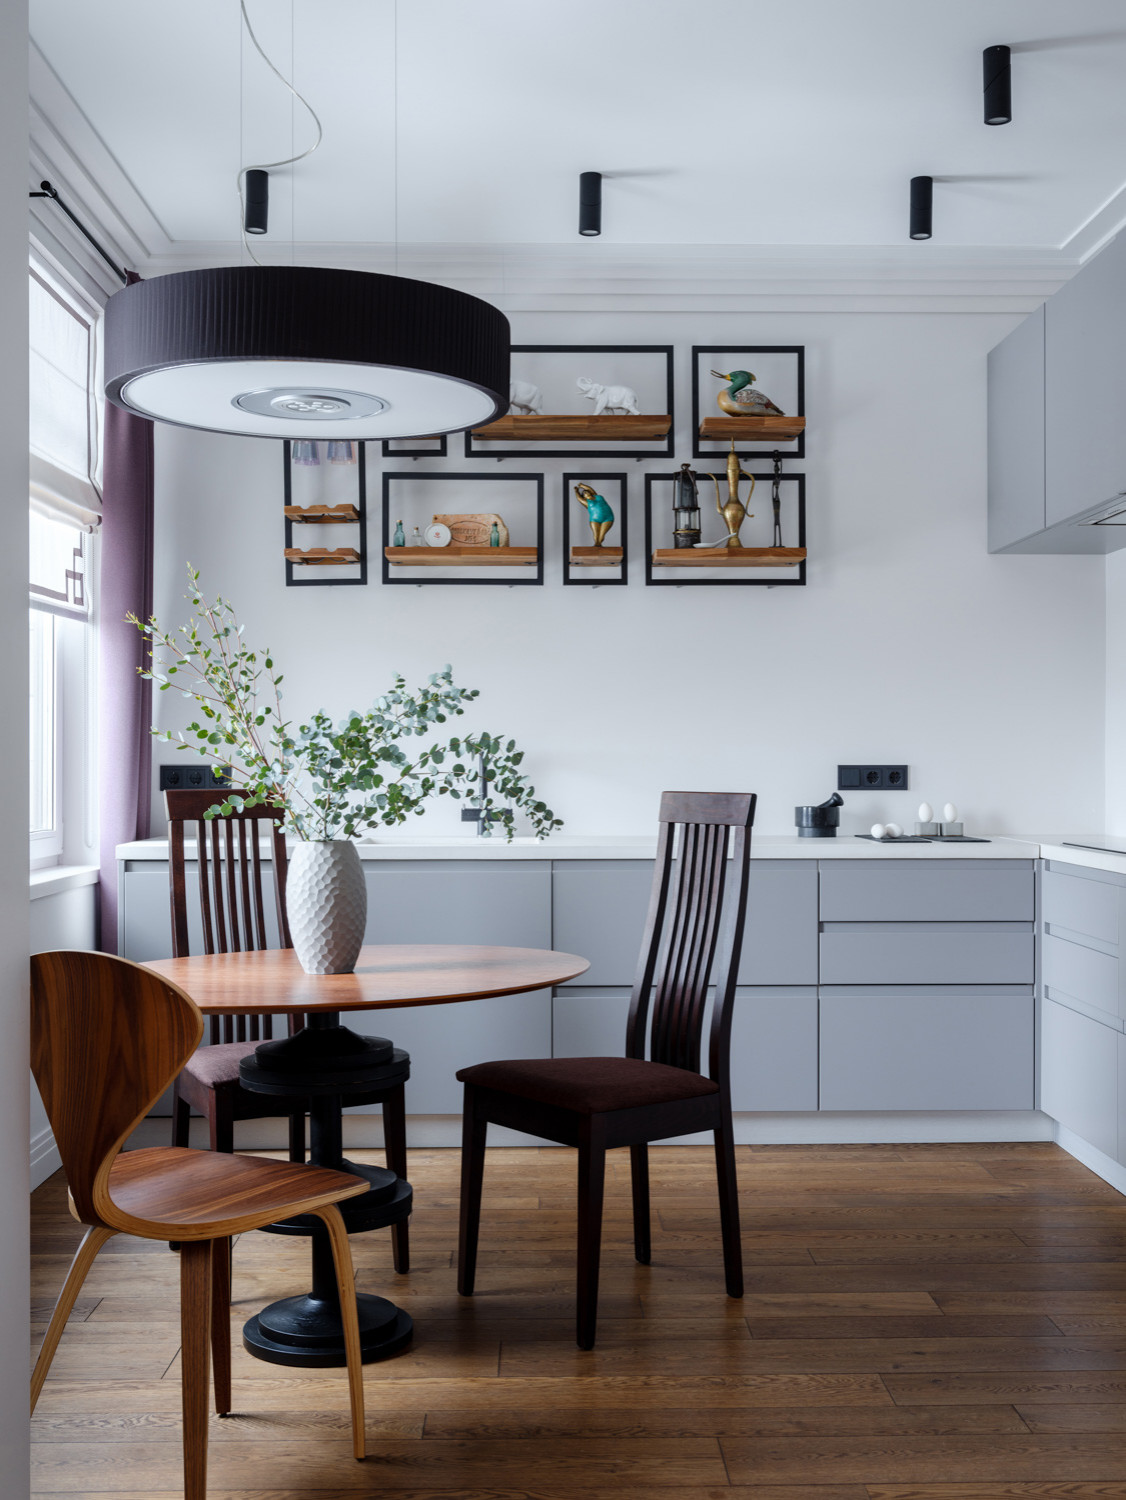 75 Beautiful Mid Sized Kitchen Pictures Ideas January 2021 Houzz